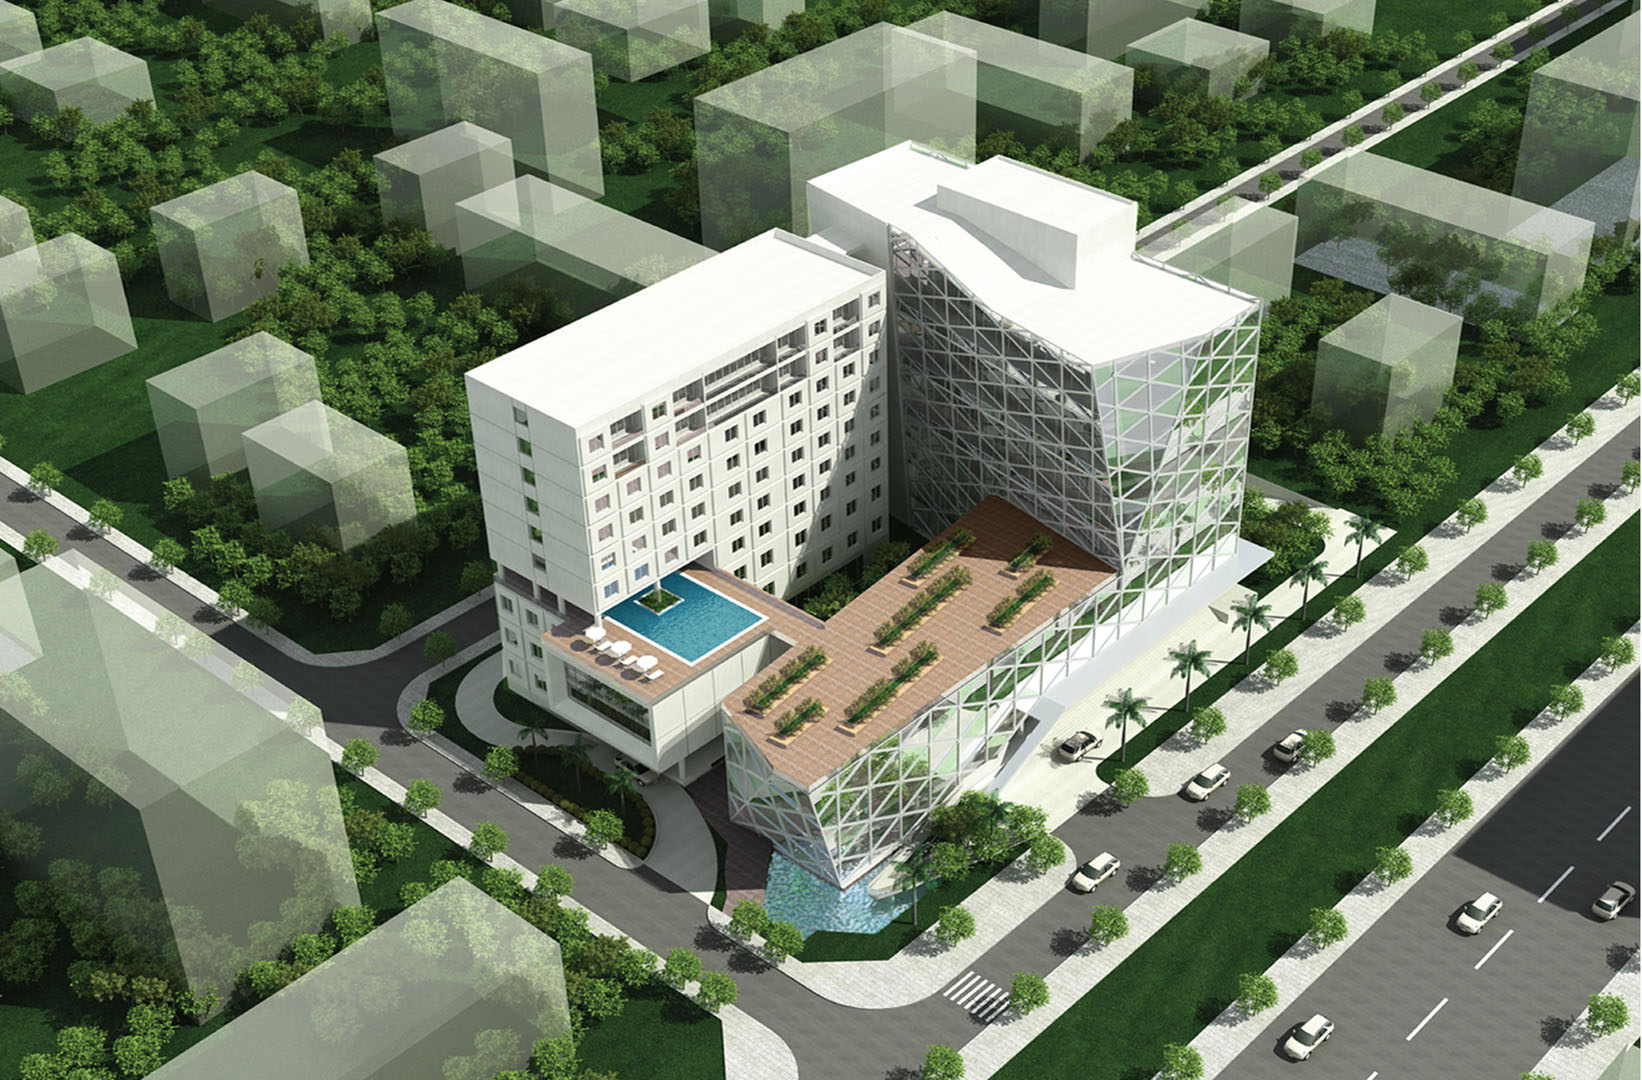 TRANG BOM HOTEL | Dong Nai | Architecture | Designed by DVNP Architects